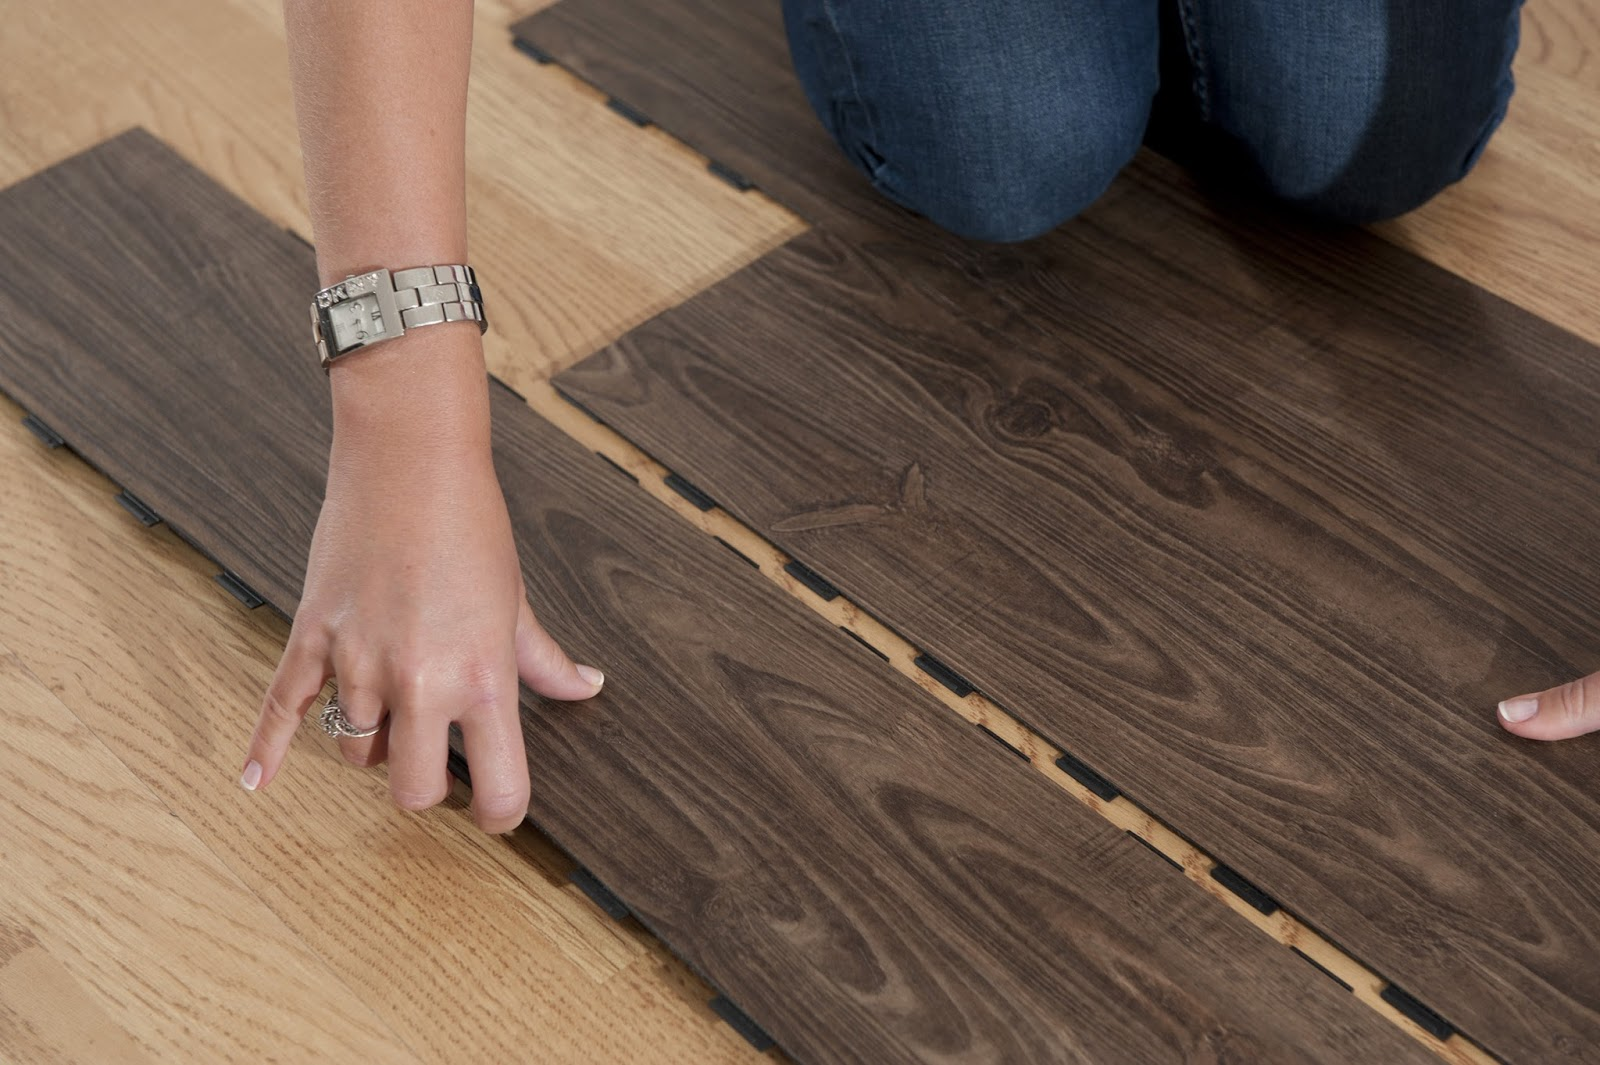 Flooring Installation How To Vinyl Flooring Installation - What do you put under vinyl flooring